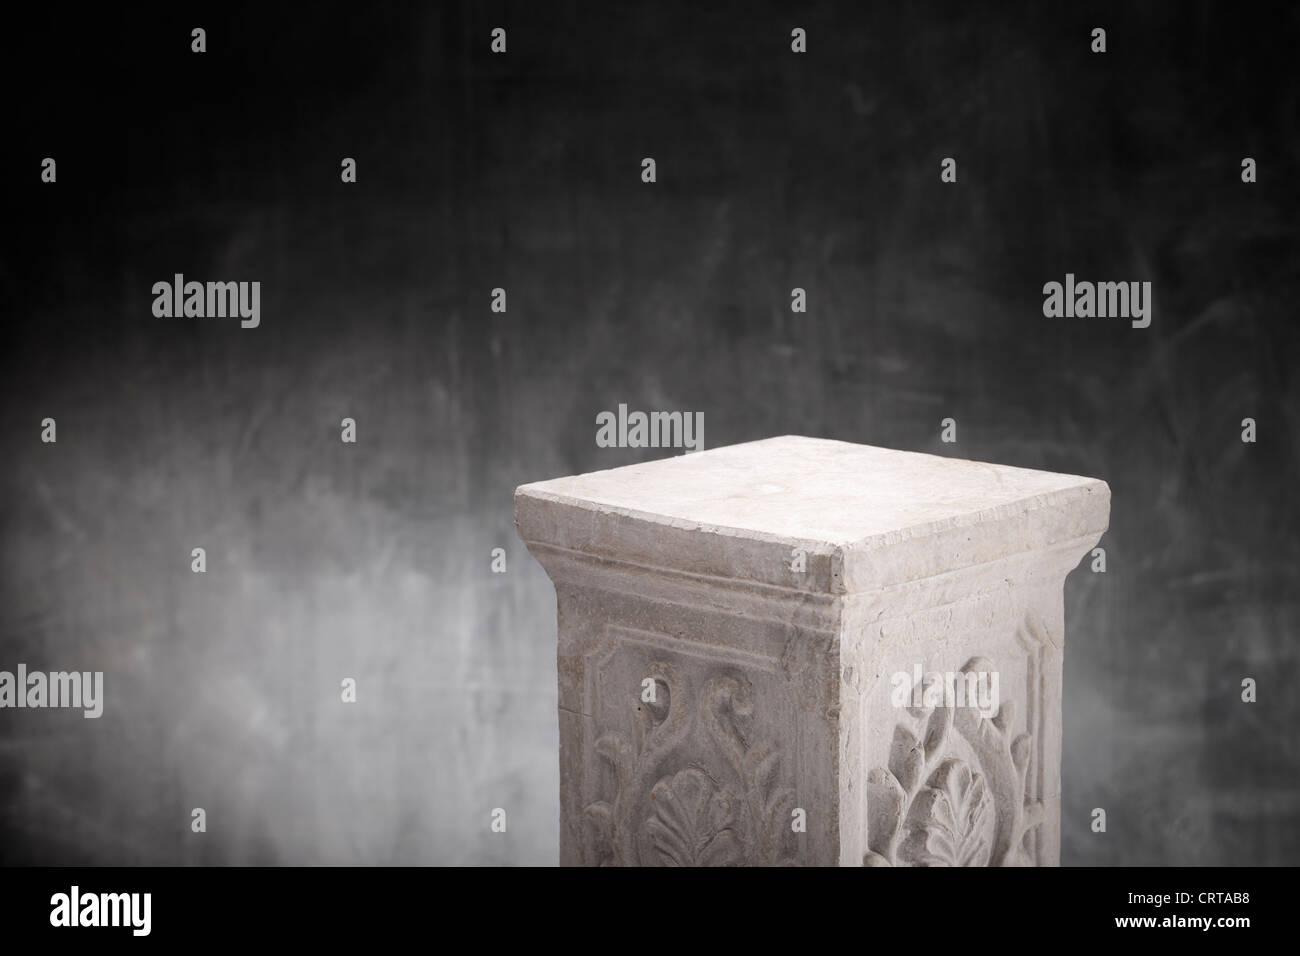 A Plaster column with nothing on top. - Stock Image